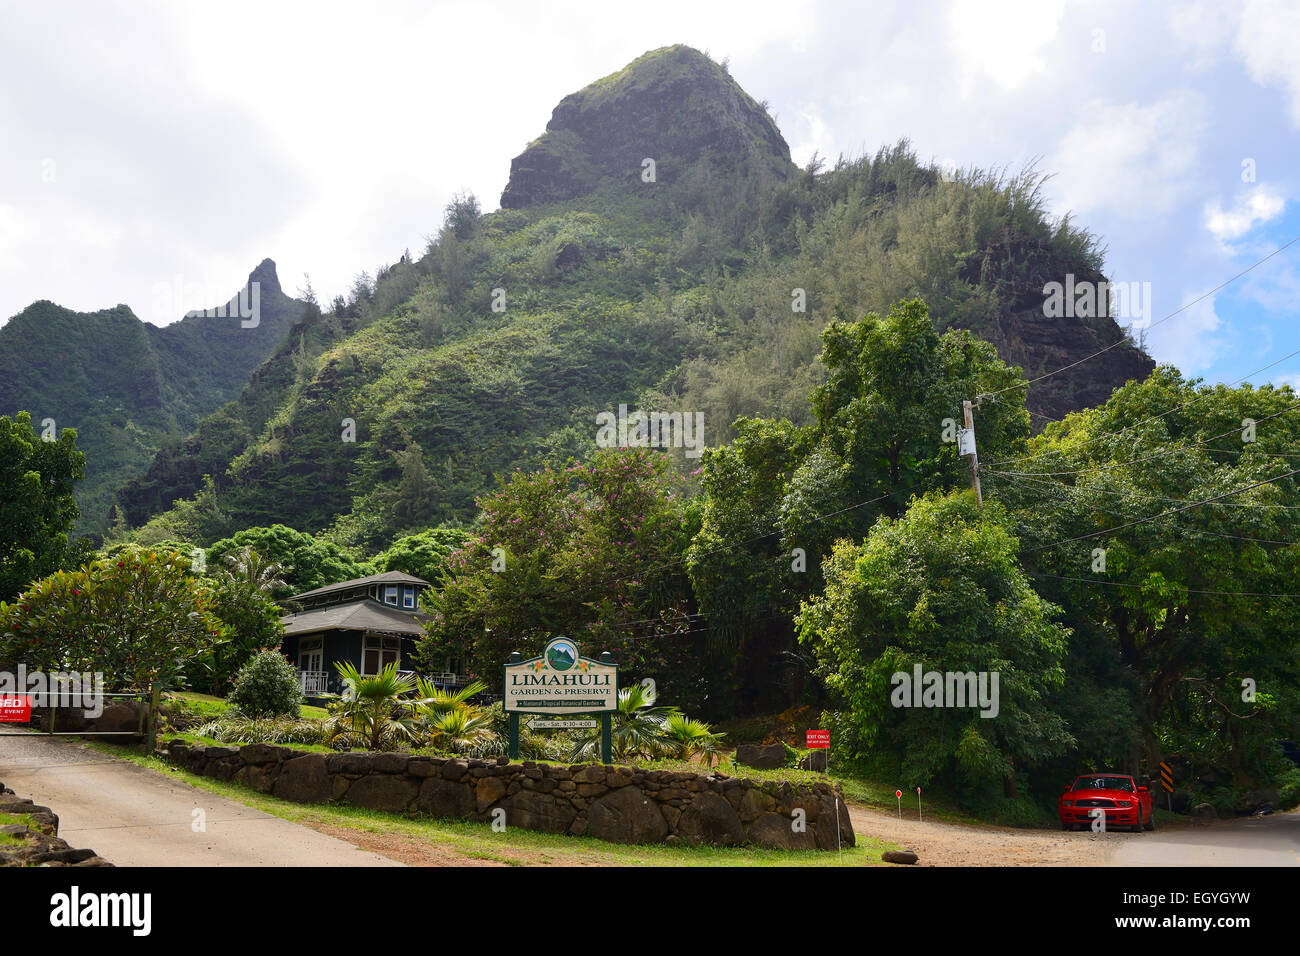 Entrance to Limahuli Garden and Preserve, Kauai, Hawaii, USA - Stock Image